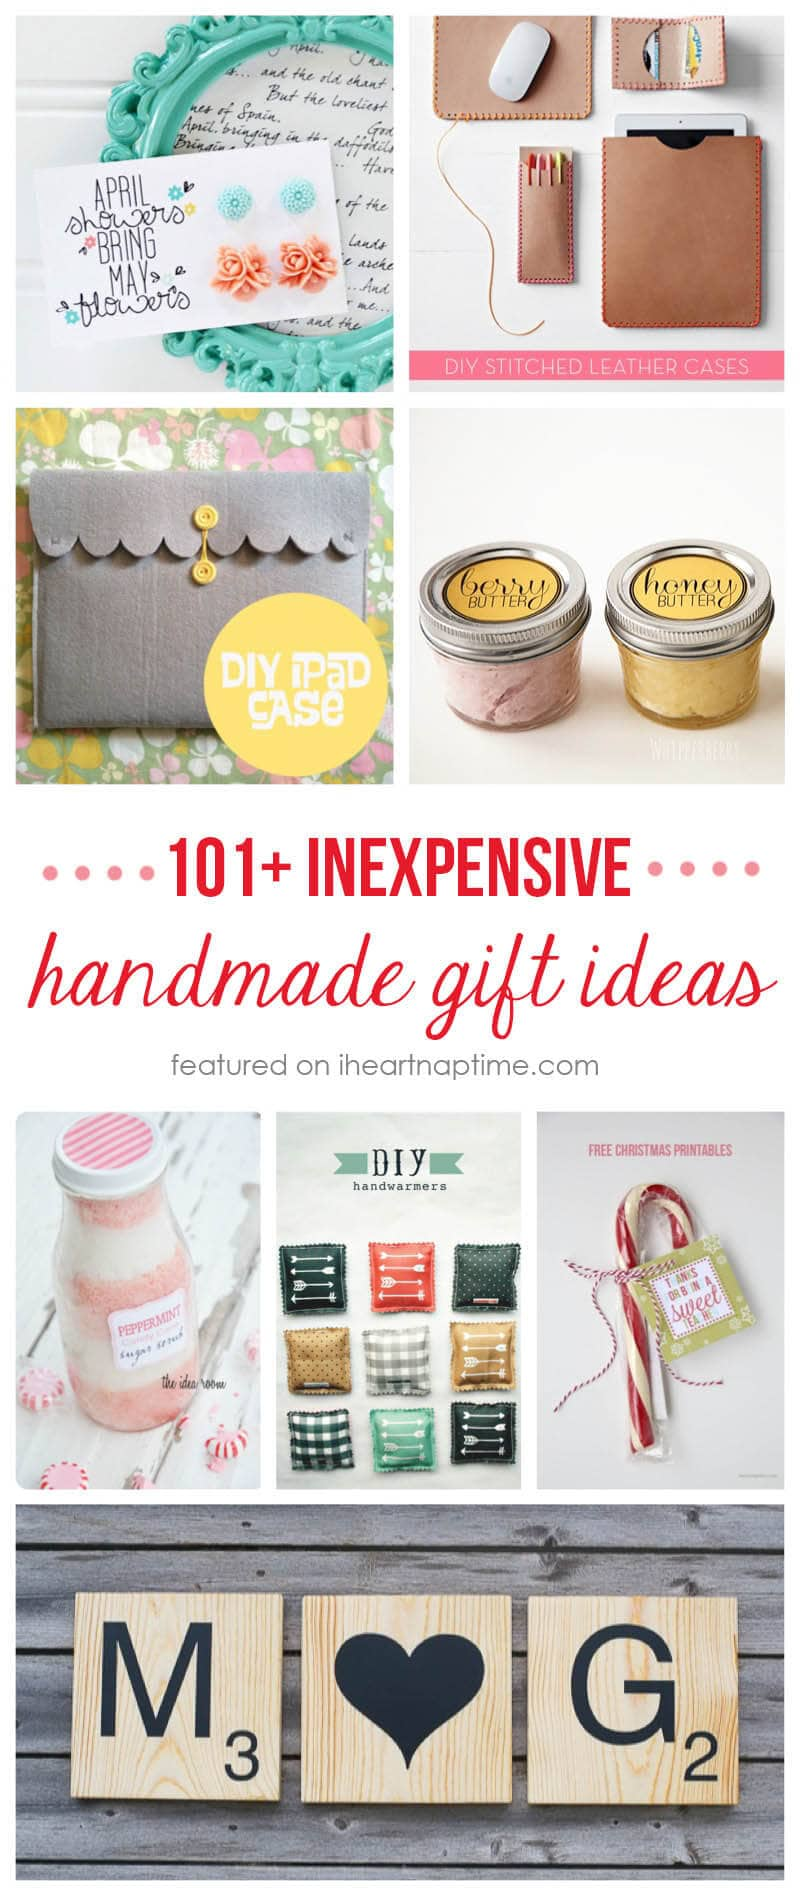 101 inexpensive handmade christmas gifts i heart nap time 101 inexpensive handmade christmas gifts on iheartnaptime solutioingenieria Image collections